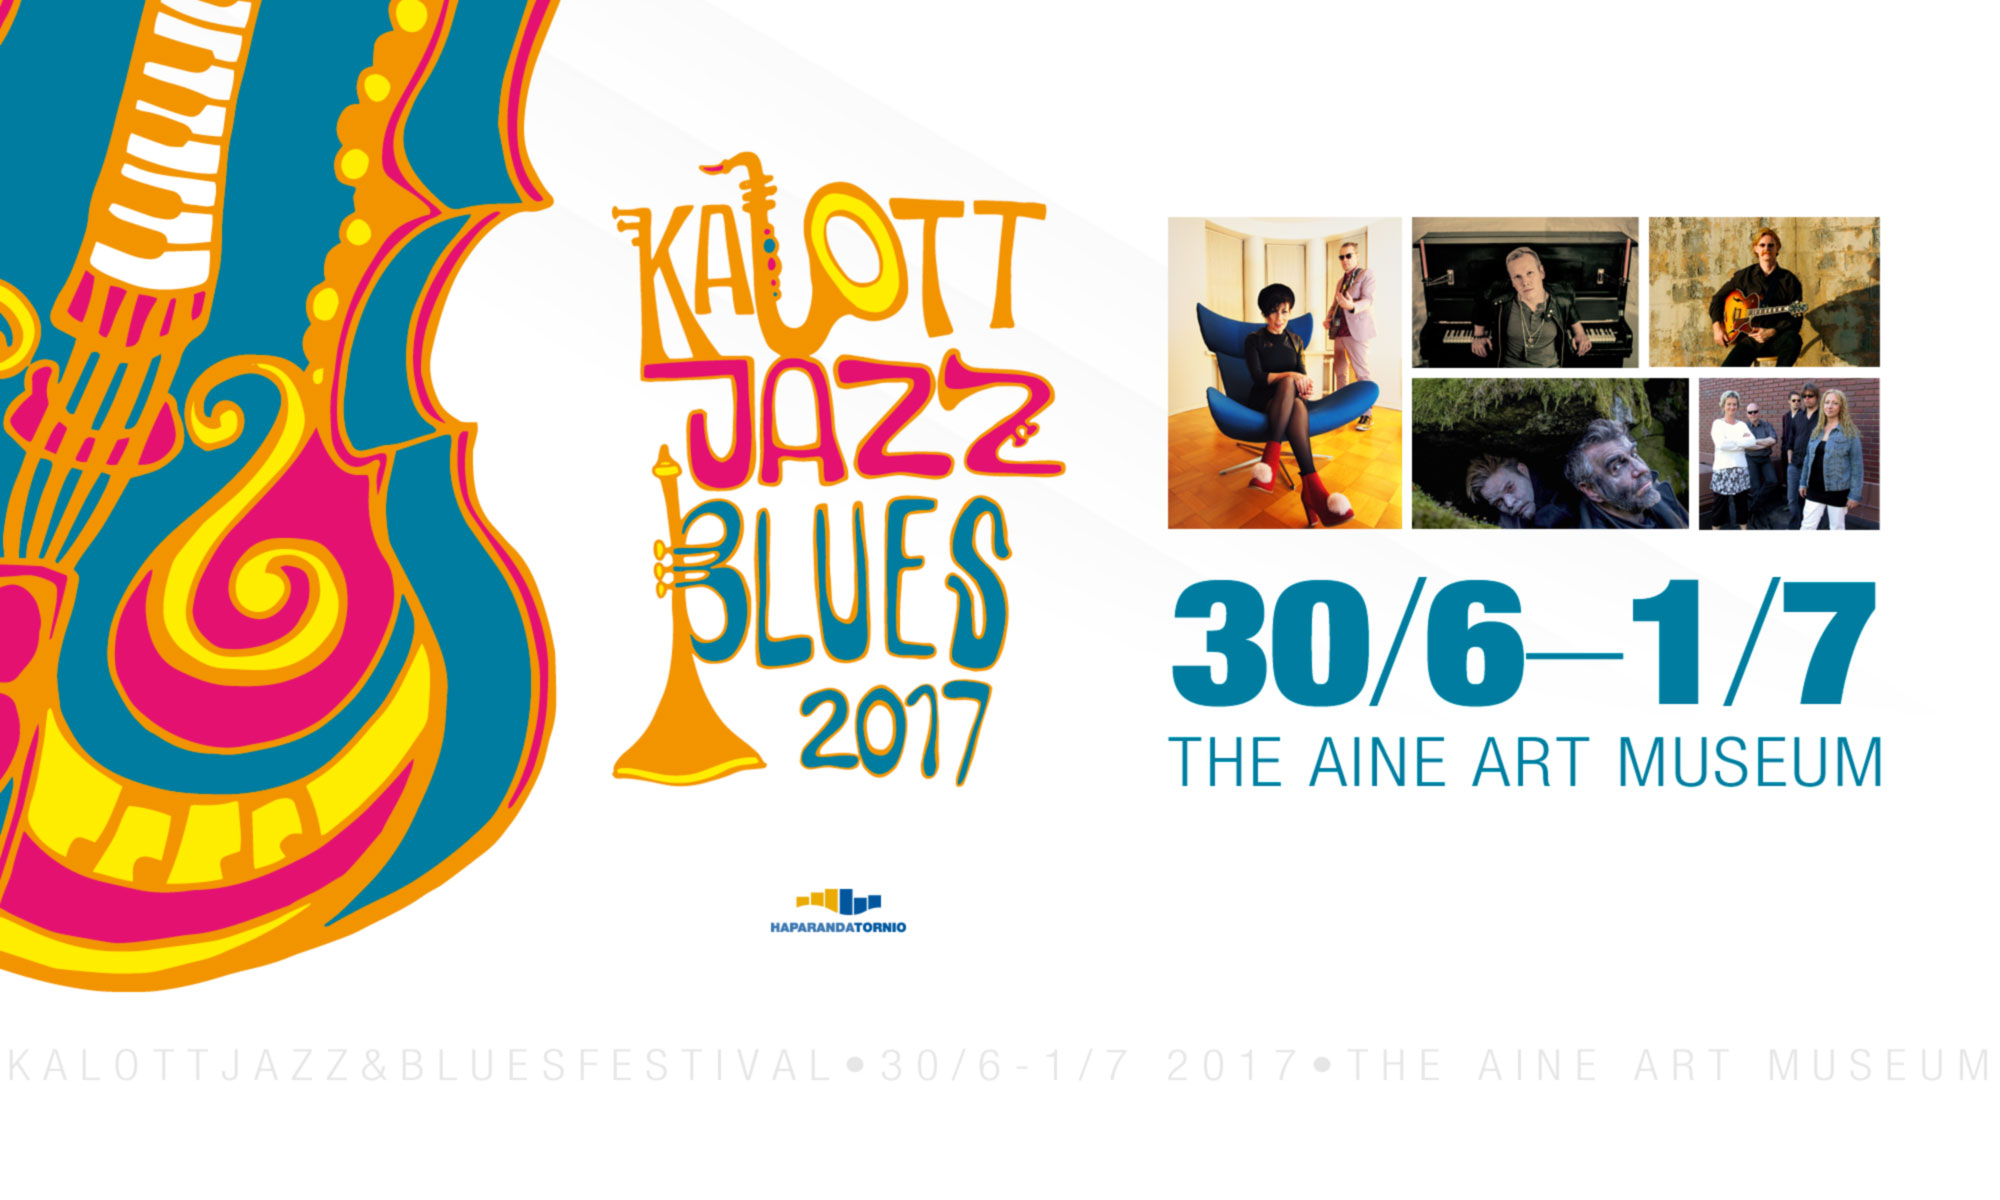 Kalottjazz & Blues Festival 2017